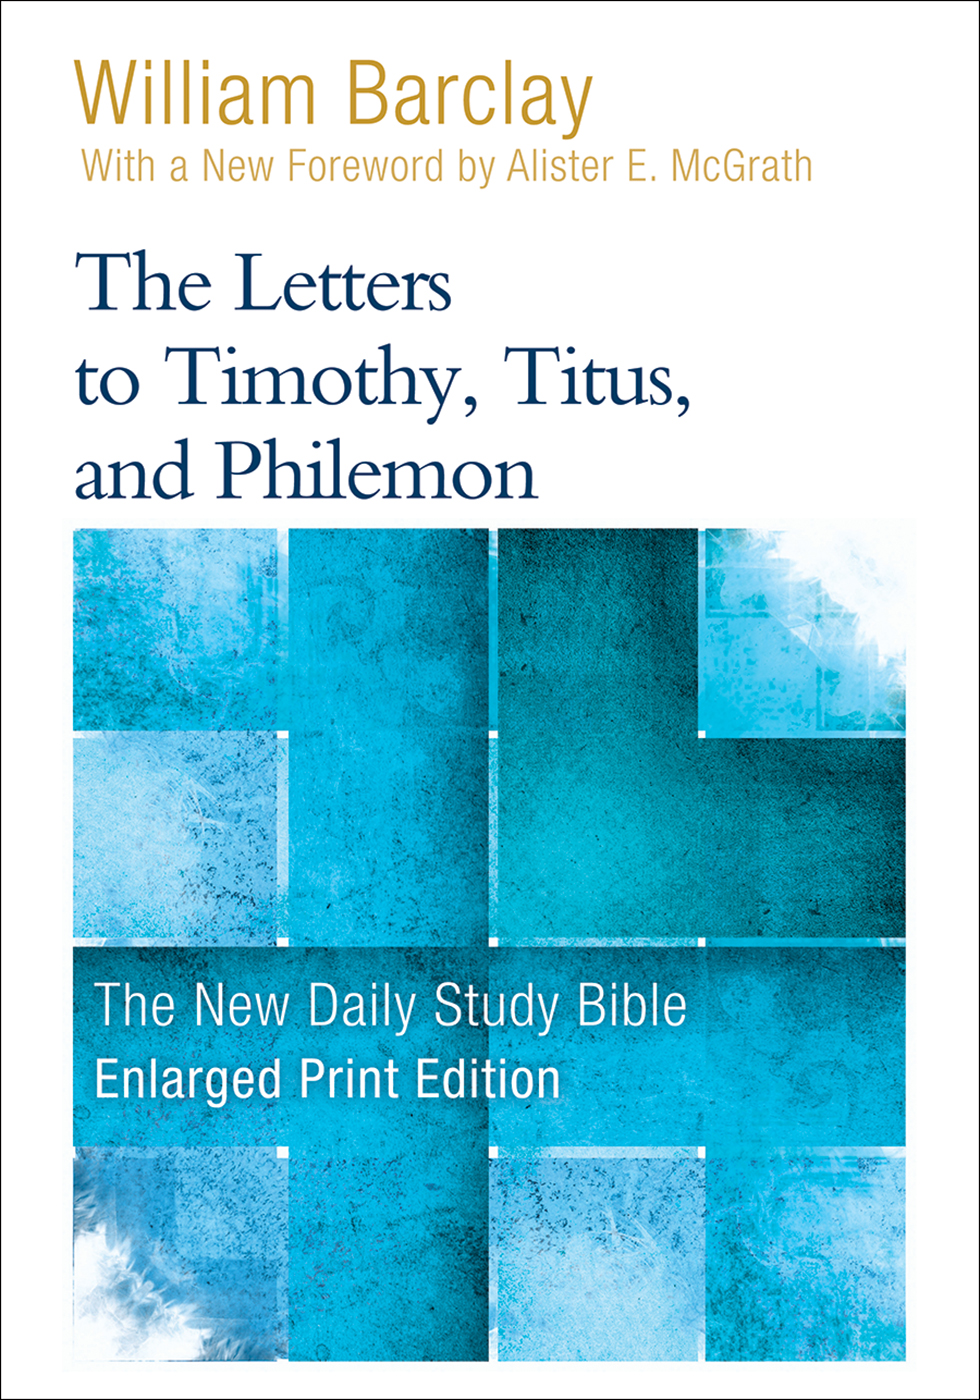 The Letters to Timothy, Titus, and Philemon-Enlarged